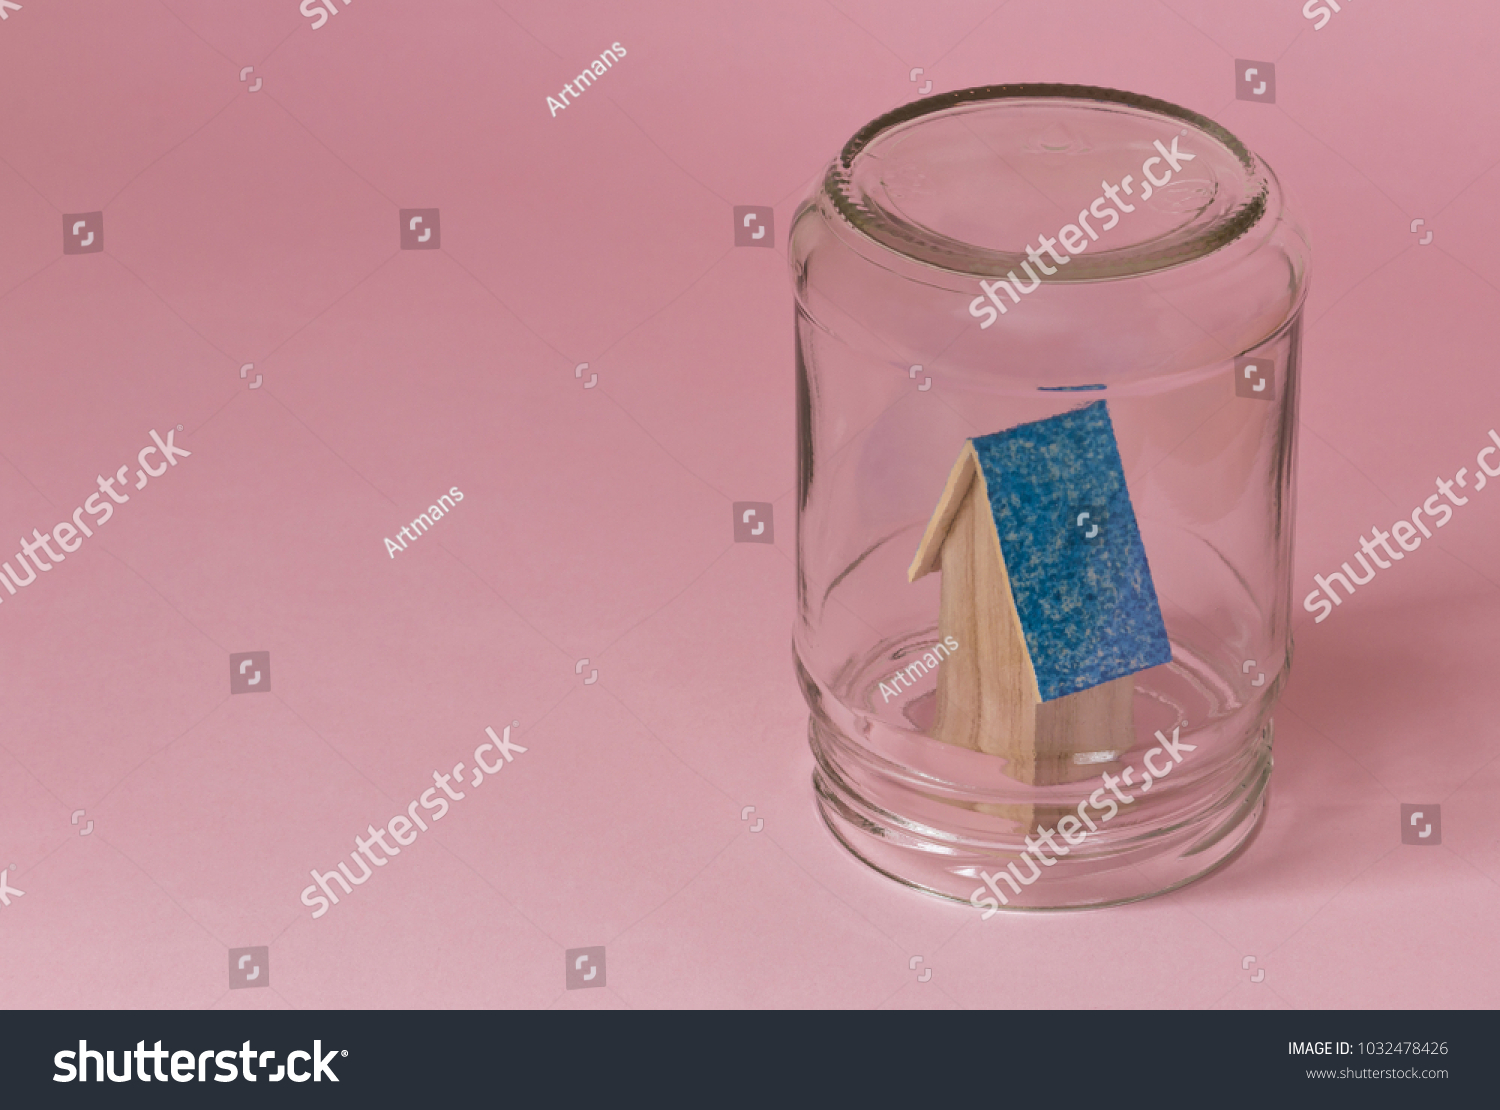 House in a jar protected in safety. Protected from misfortunes. House in a jar on a pink background with a blue roof. #1032478426